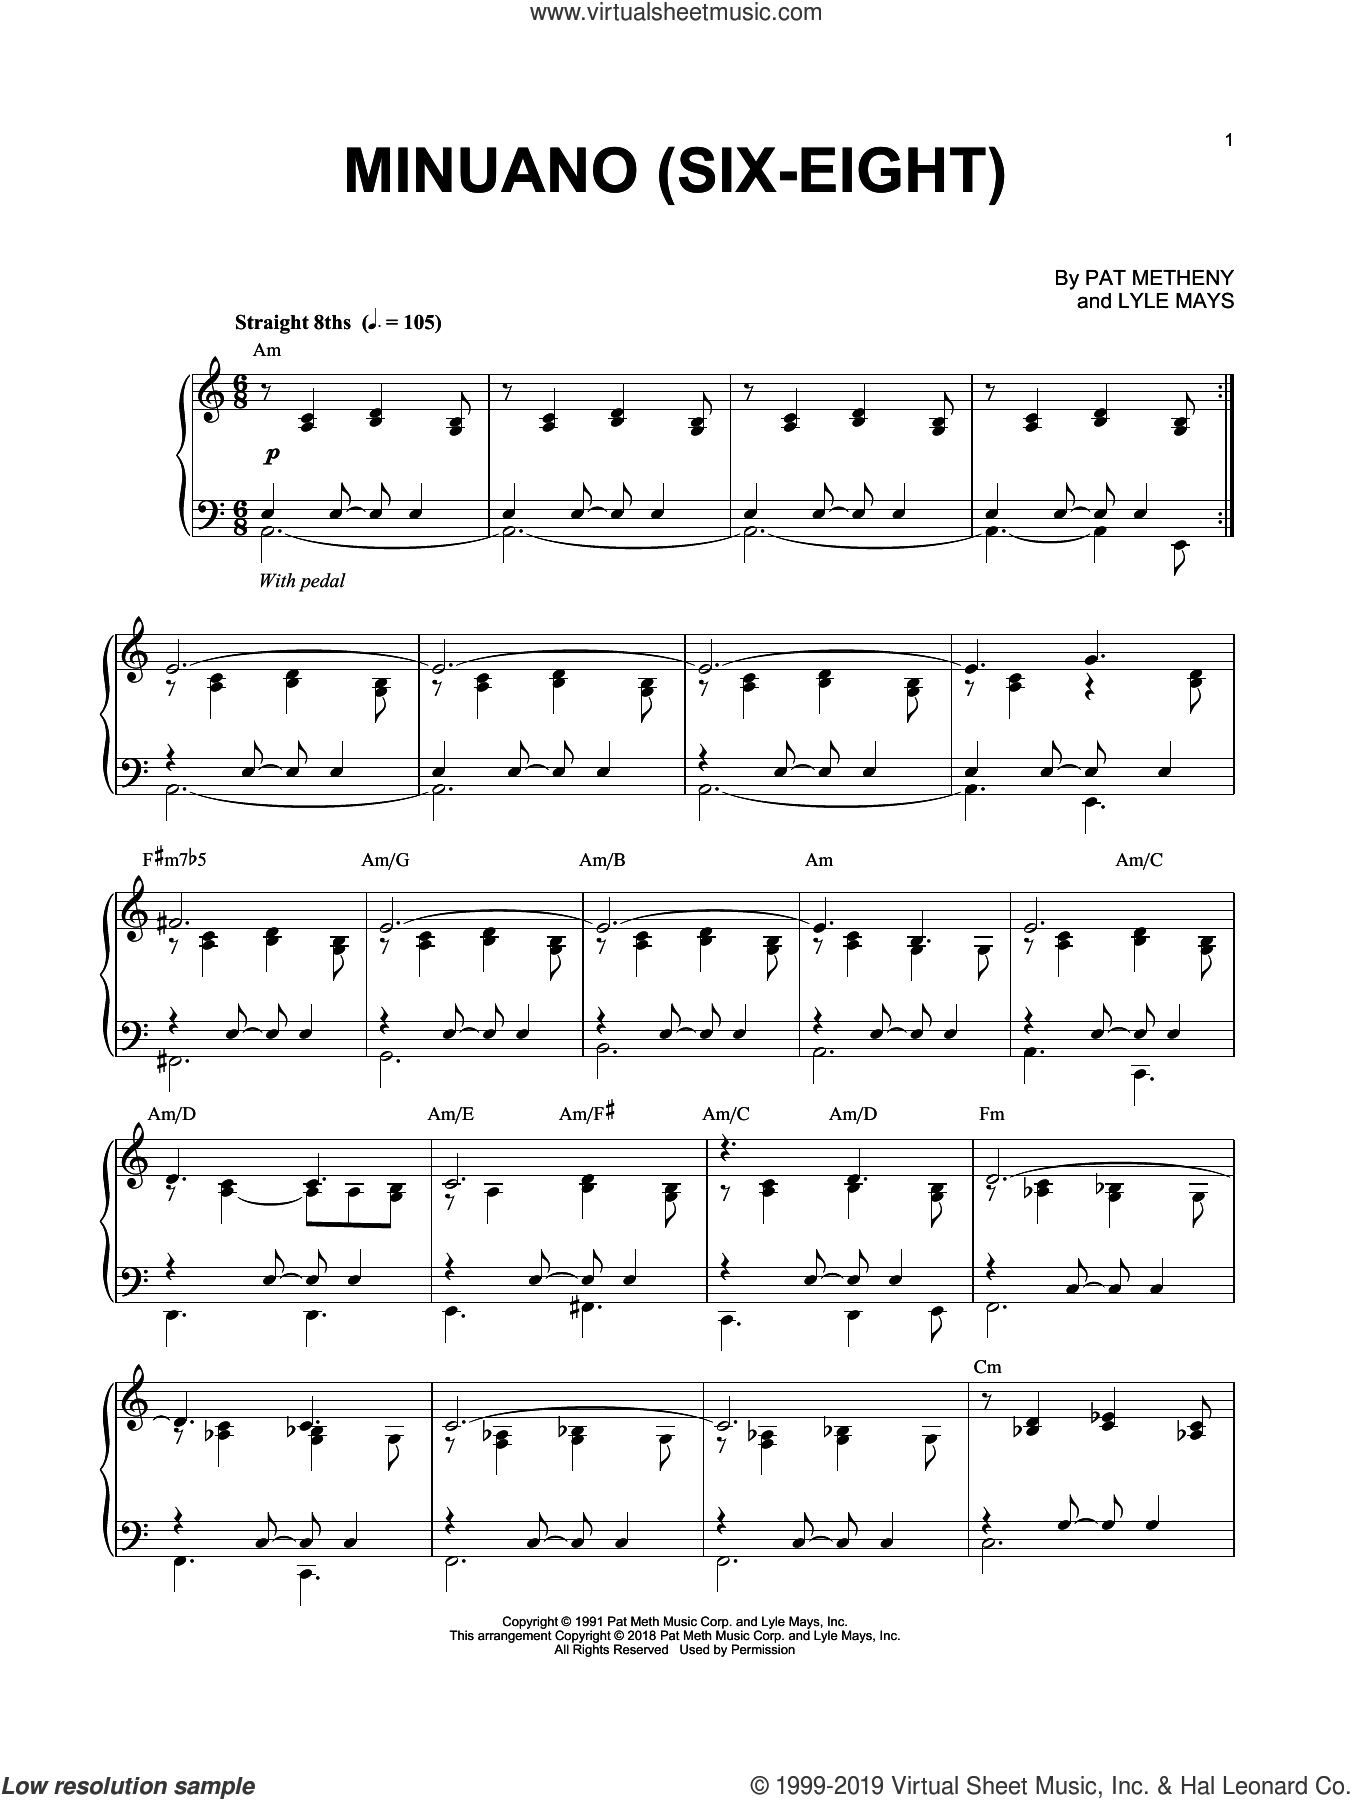 Minuano (Six-Eight) sheet music for piano solo by Pat Metheny and Lyle Mays, intermediate skill level